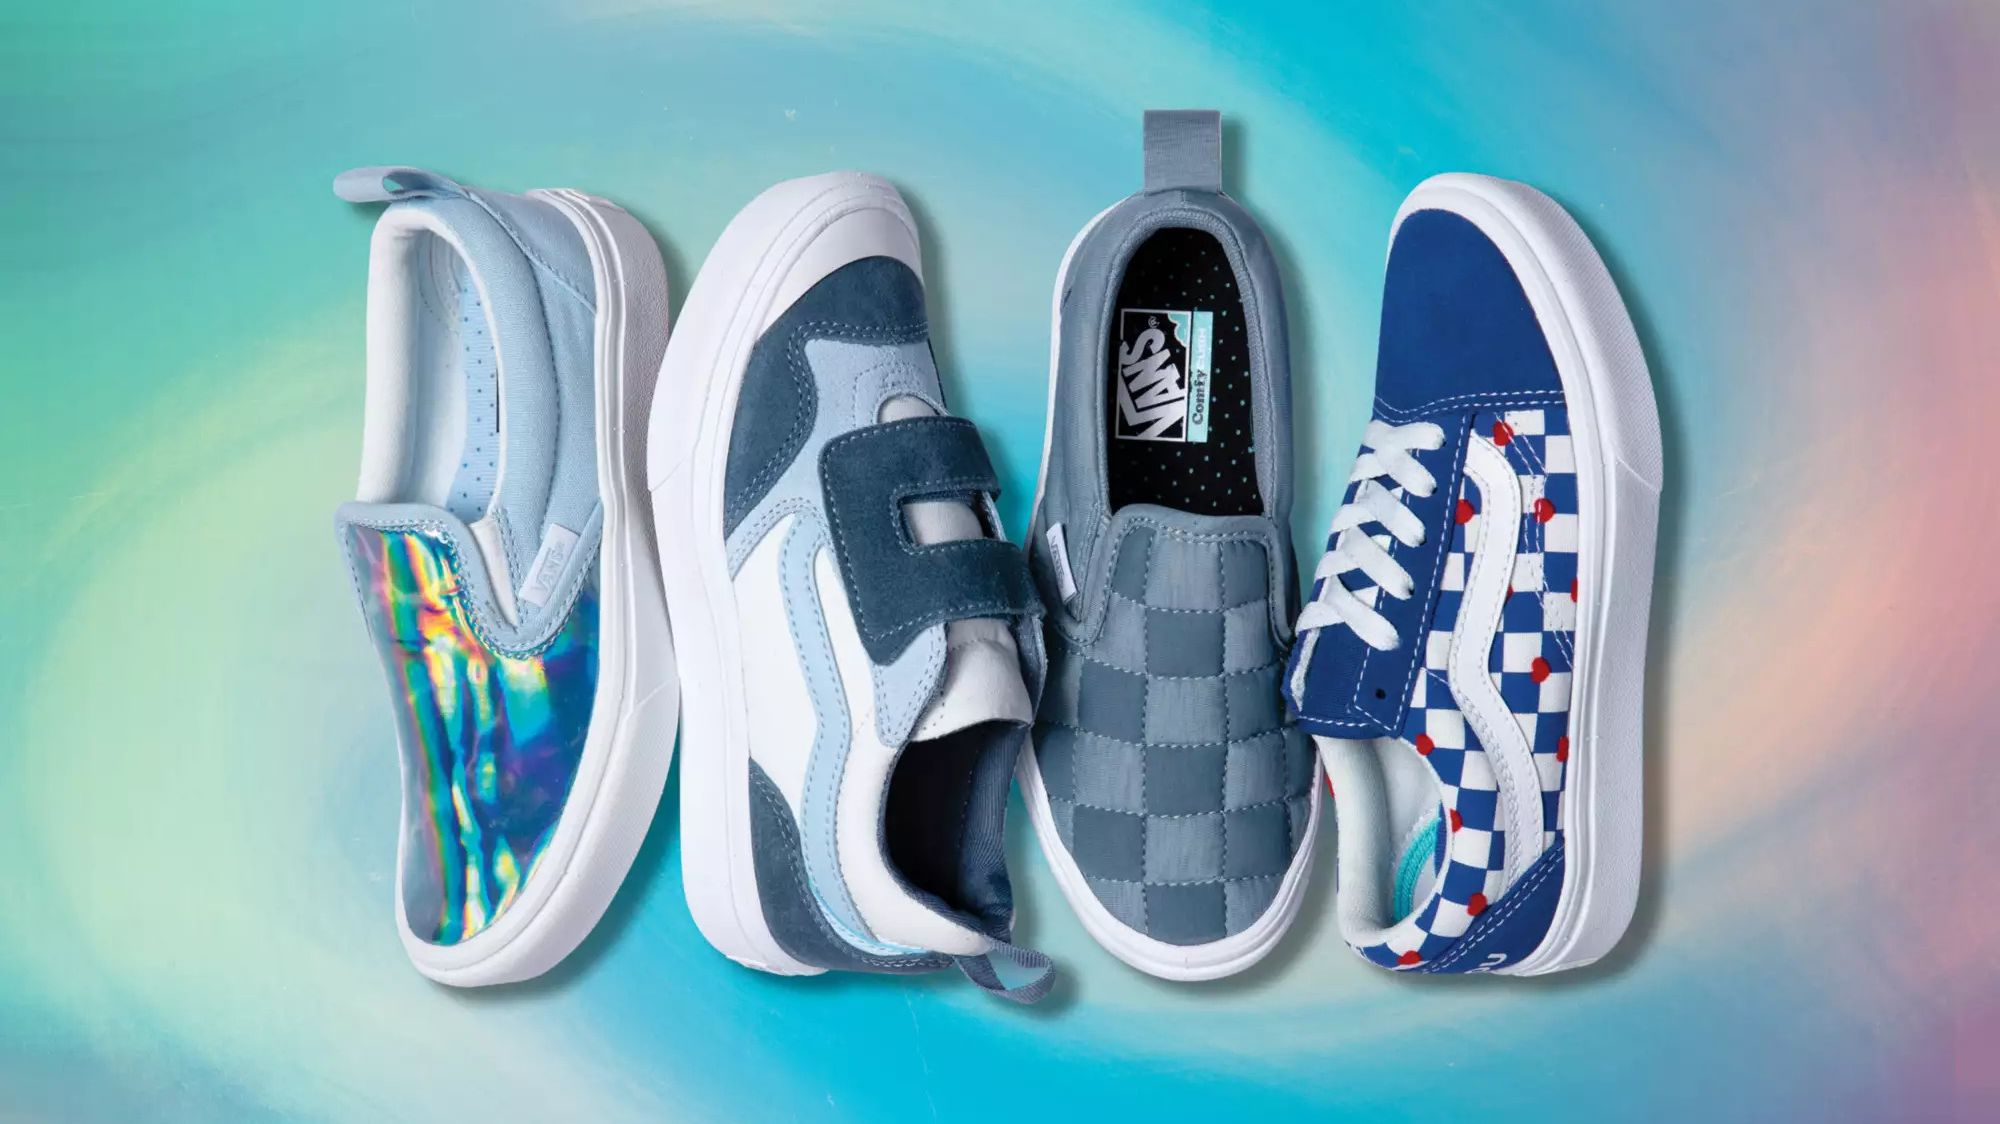 Vans's New Autism Awareness Sneaker Collection Features Sensory-Inclusive Elements